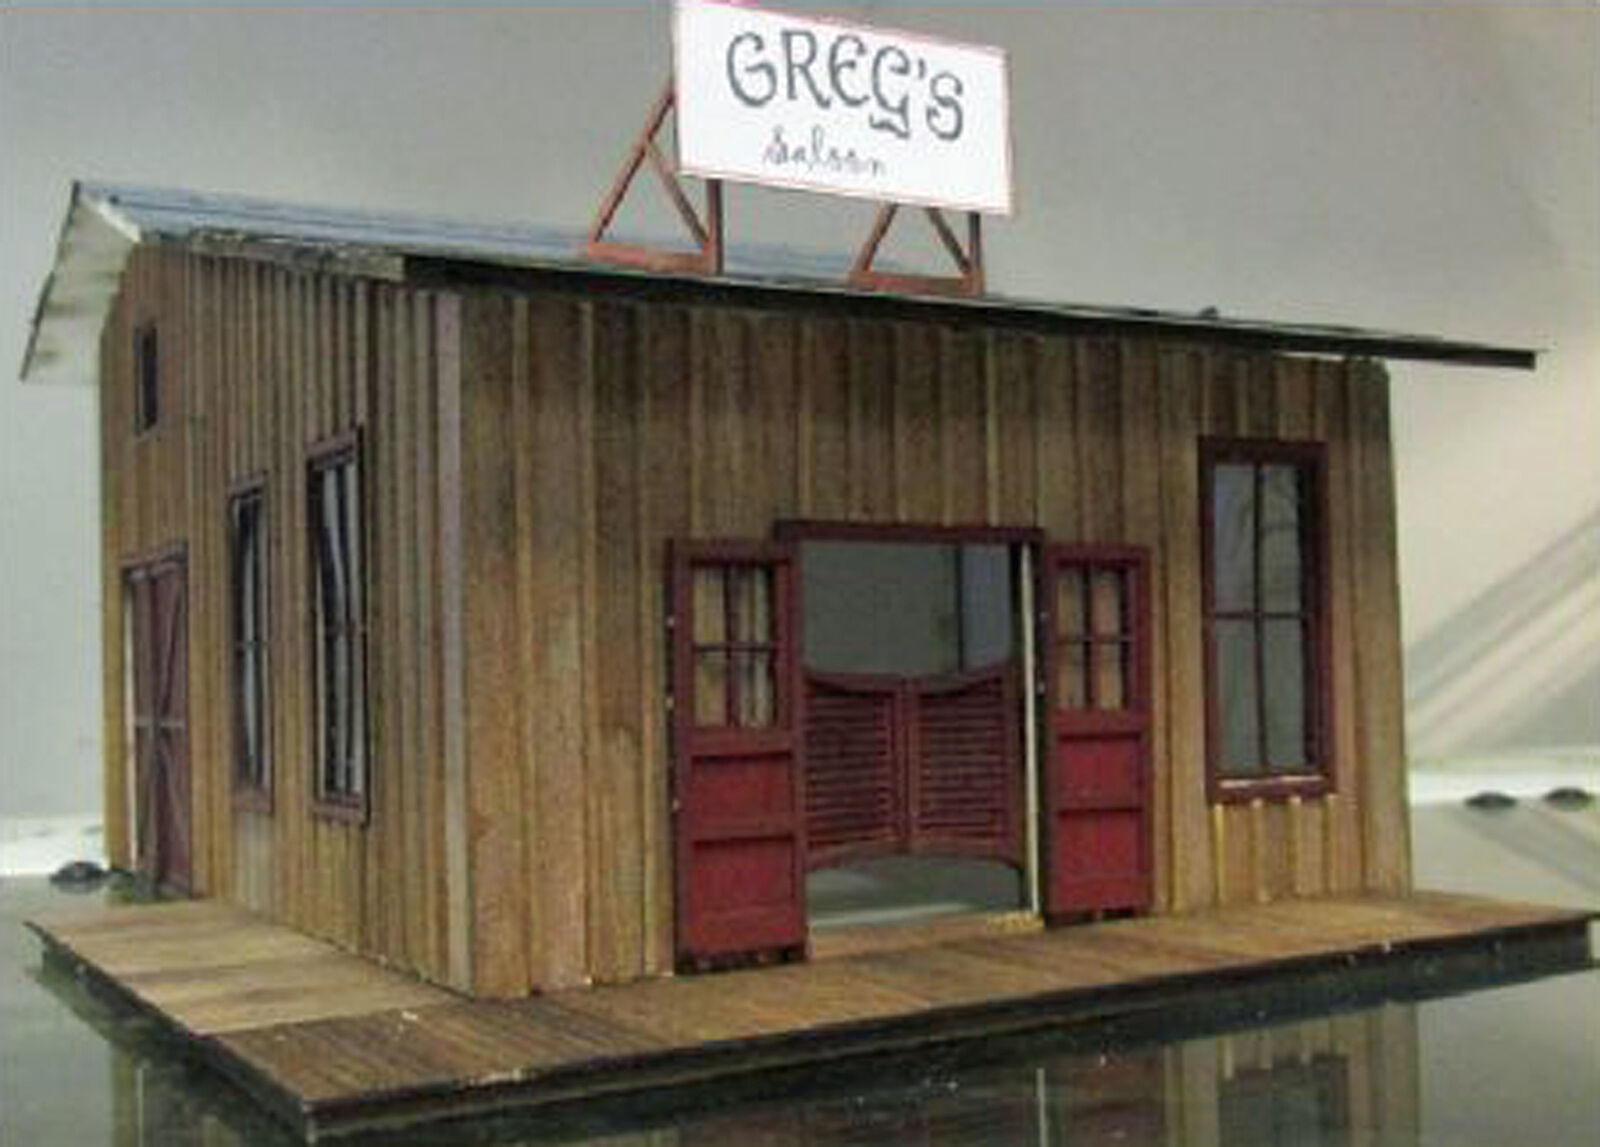 GREG'S SALOON O On30 Model Railroad Structure Unpainted Wood Laser Kit RSL1005